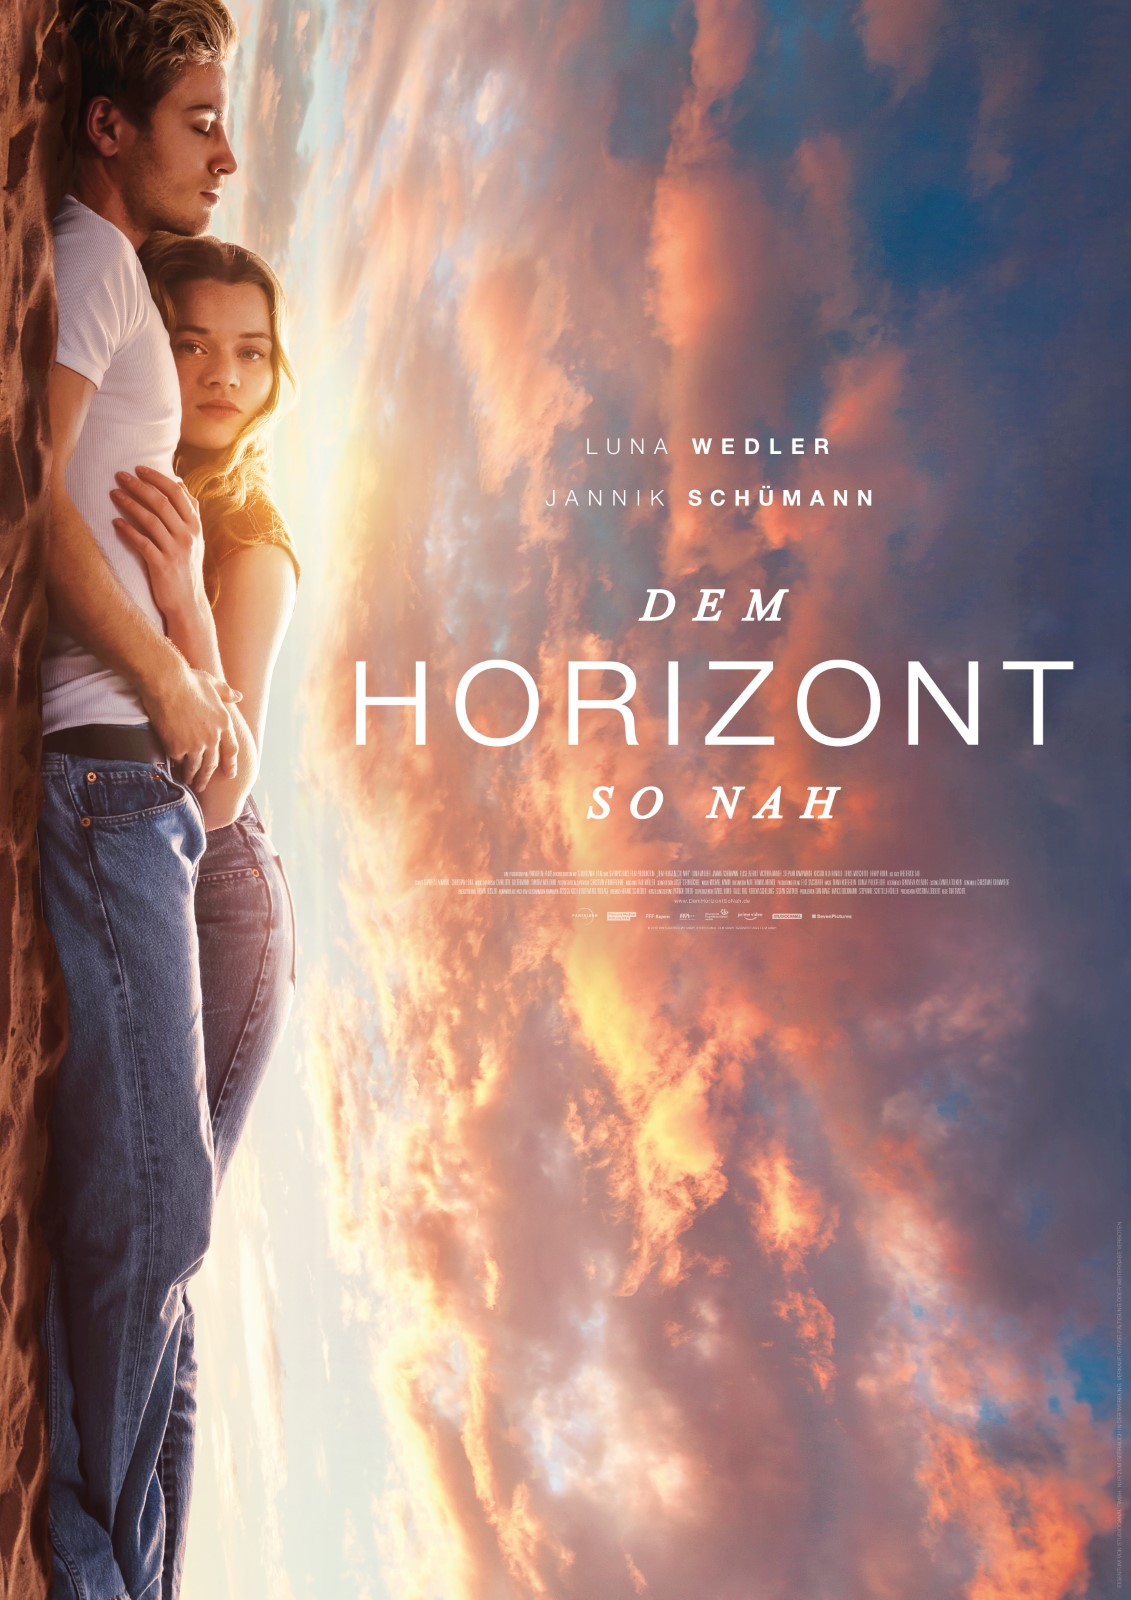 Horyzont uczuć / Dem Horizont so nah (2019) [BDRip] [XviD-KiT] [Lektor PL]